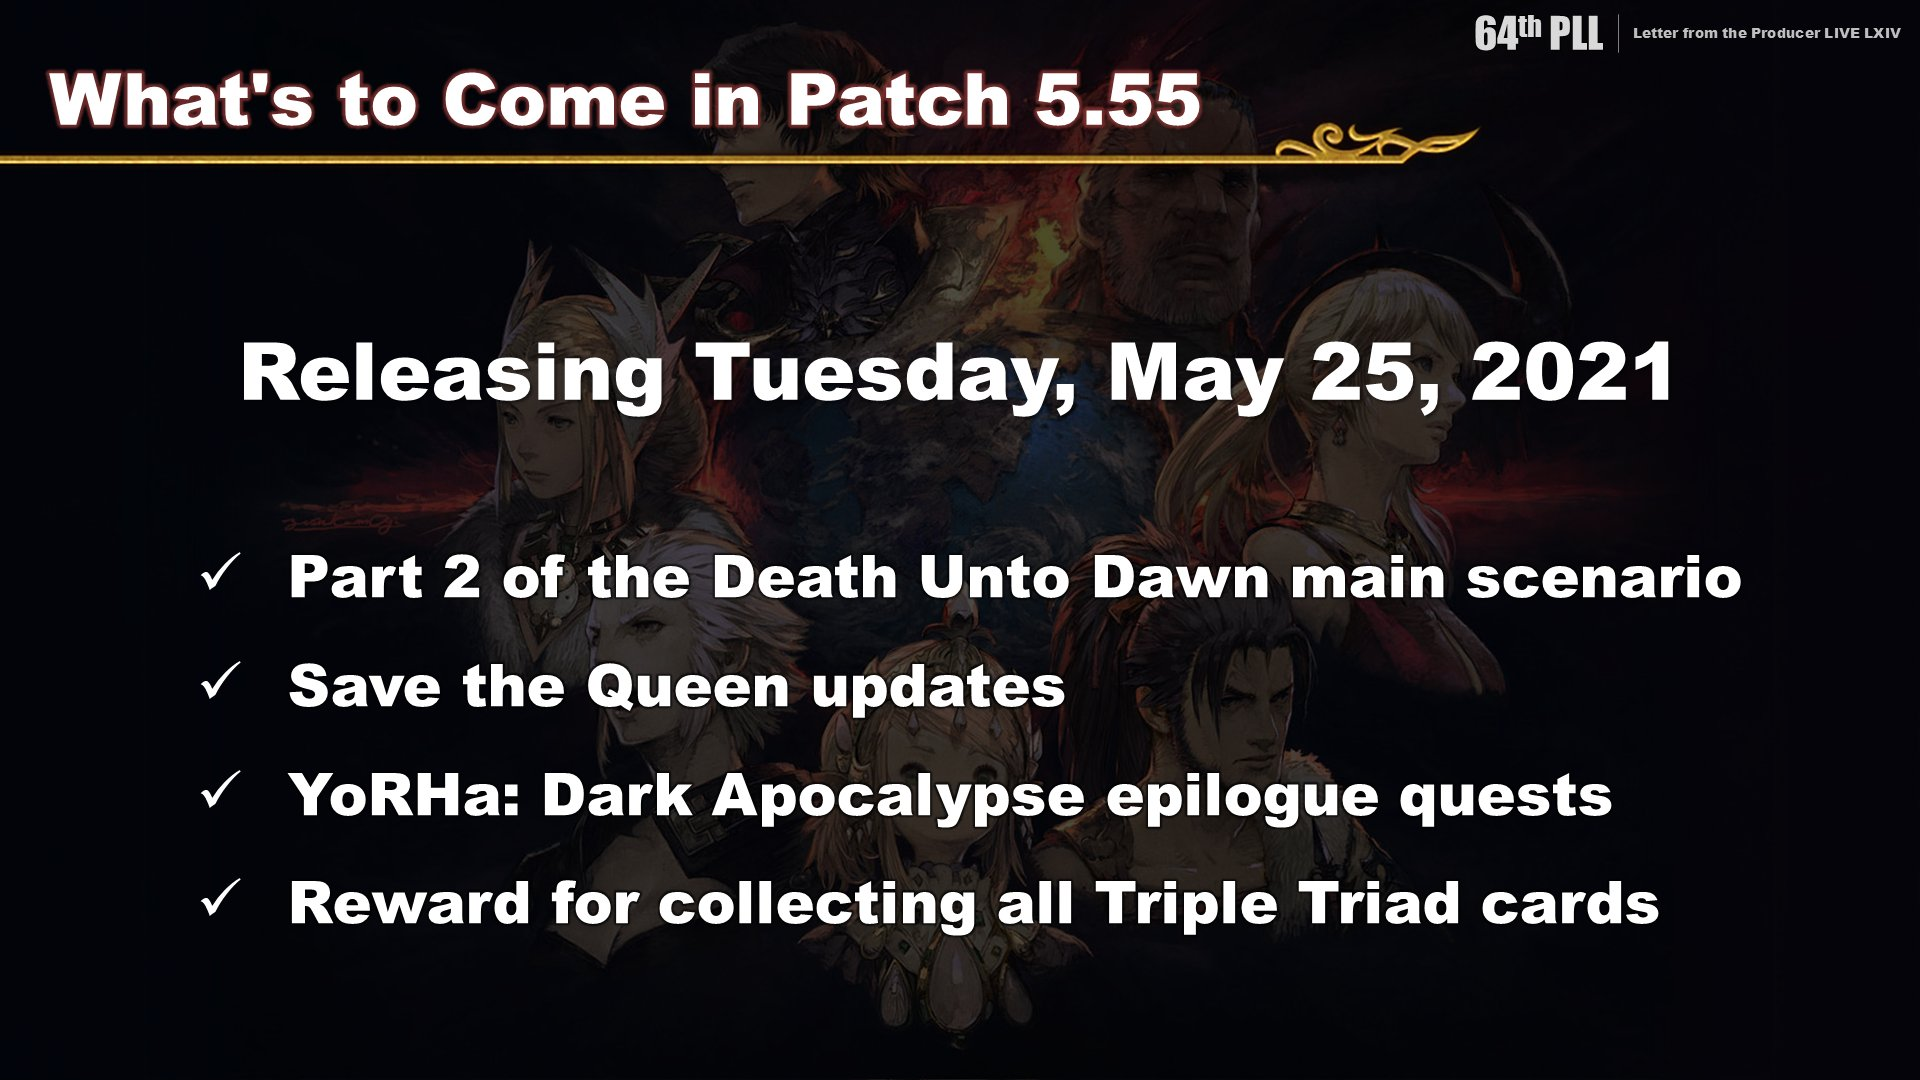 5.55 Image lists planned updates for Patch 5.55. Death Unto Dawn main scenario part 2, Save the Queen updates, epilogue quests for YoRHa Dark Apocalypse and a new Triple Triad Reward for collecting all cards.